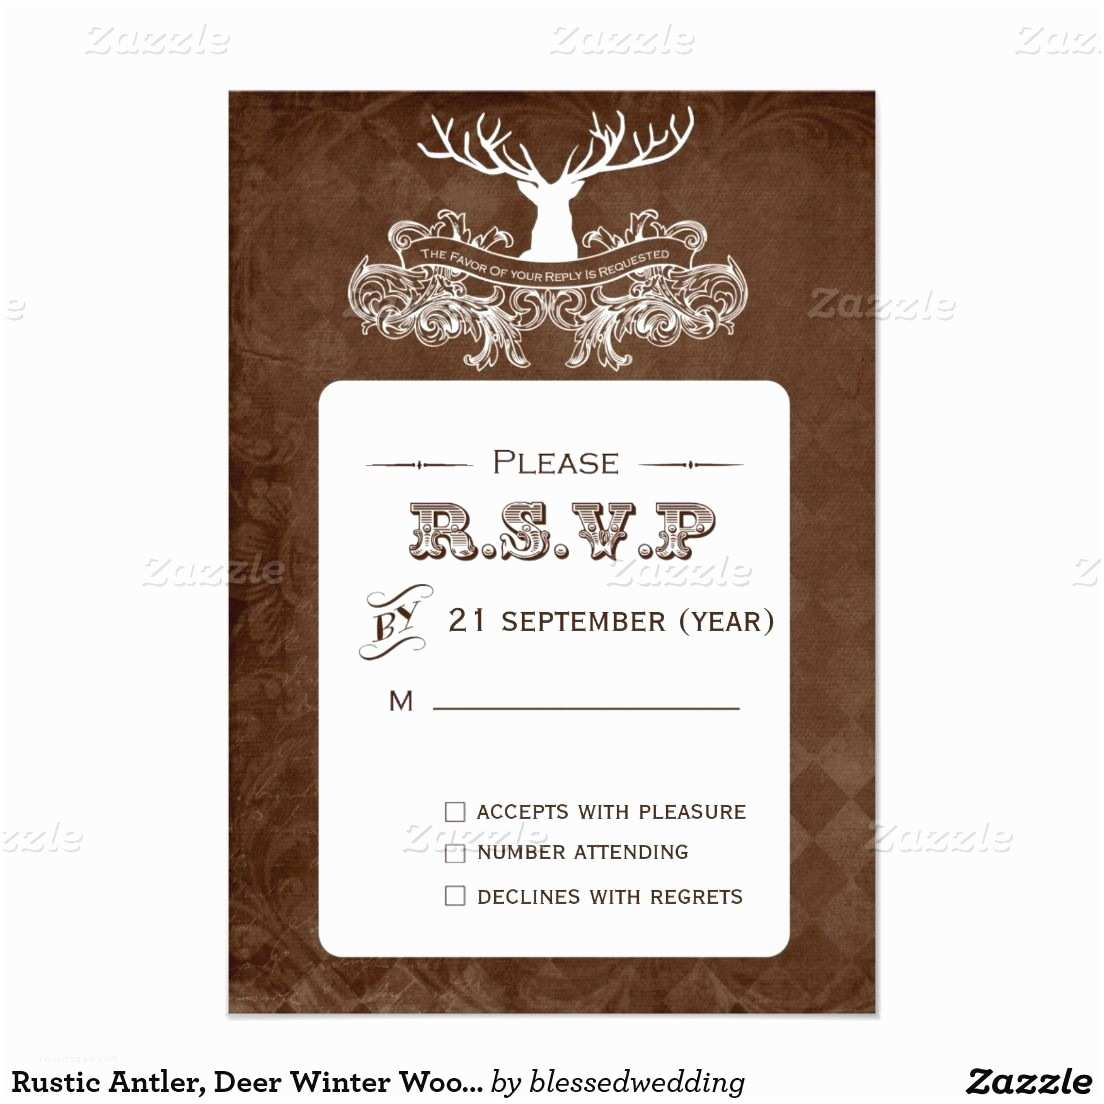 Cheap Wedding Invites with Response Cards Cheap Wedding Invitations with Rsvp Cards Included Gallery